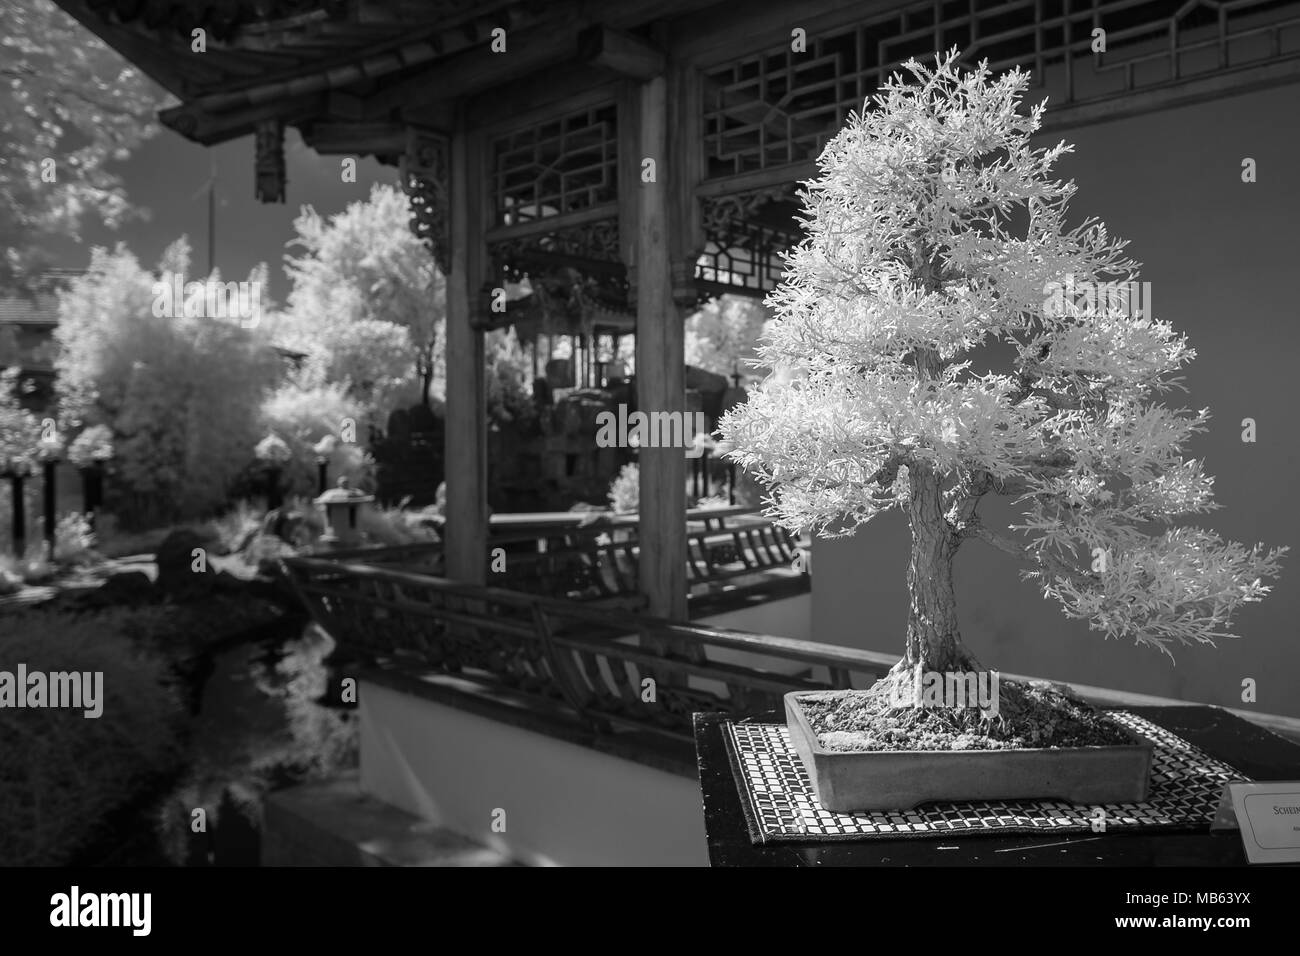 Conifer as bonsai tree in black and white infrared with blurred background - Stock Image